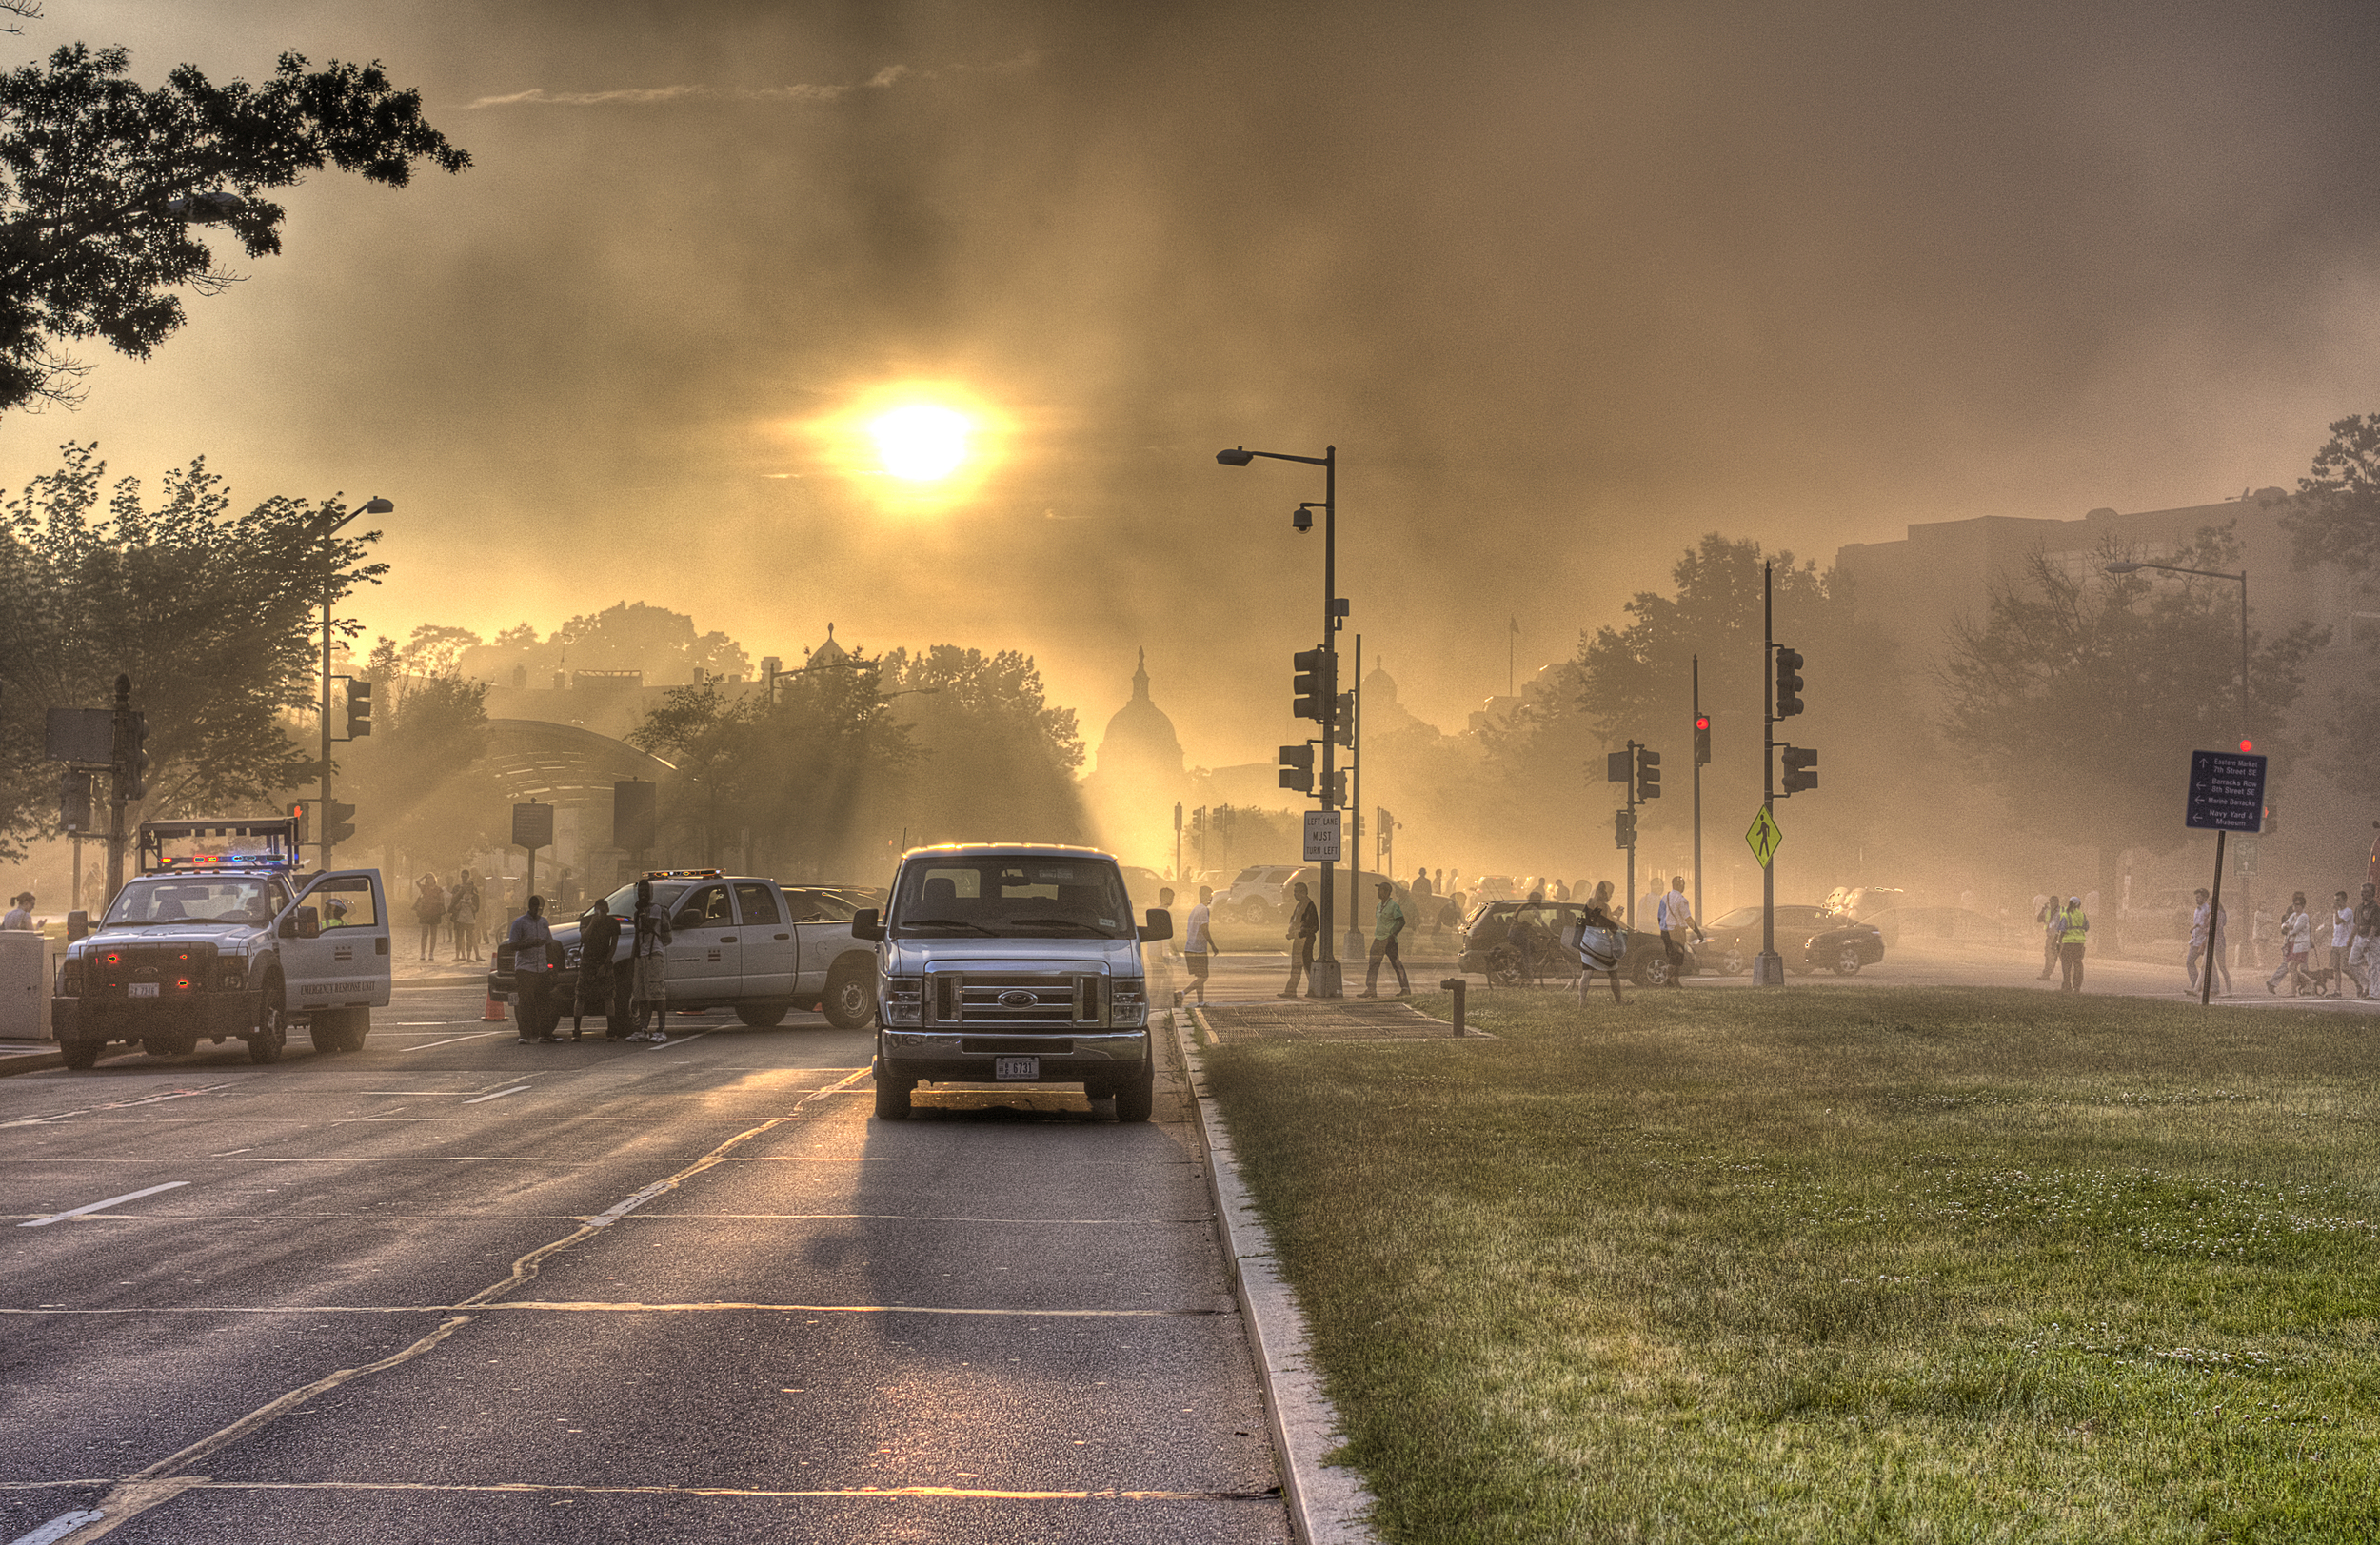 I decided to shoot the HDR because the sun coming through the smoke would give this amazing post-apocalyptic effect with both the cars a people moving.